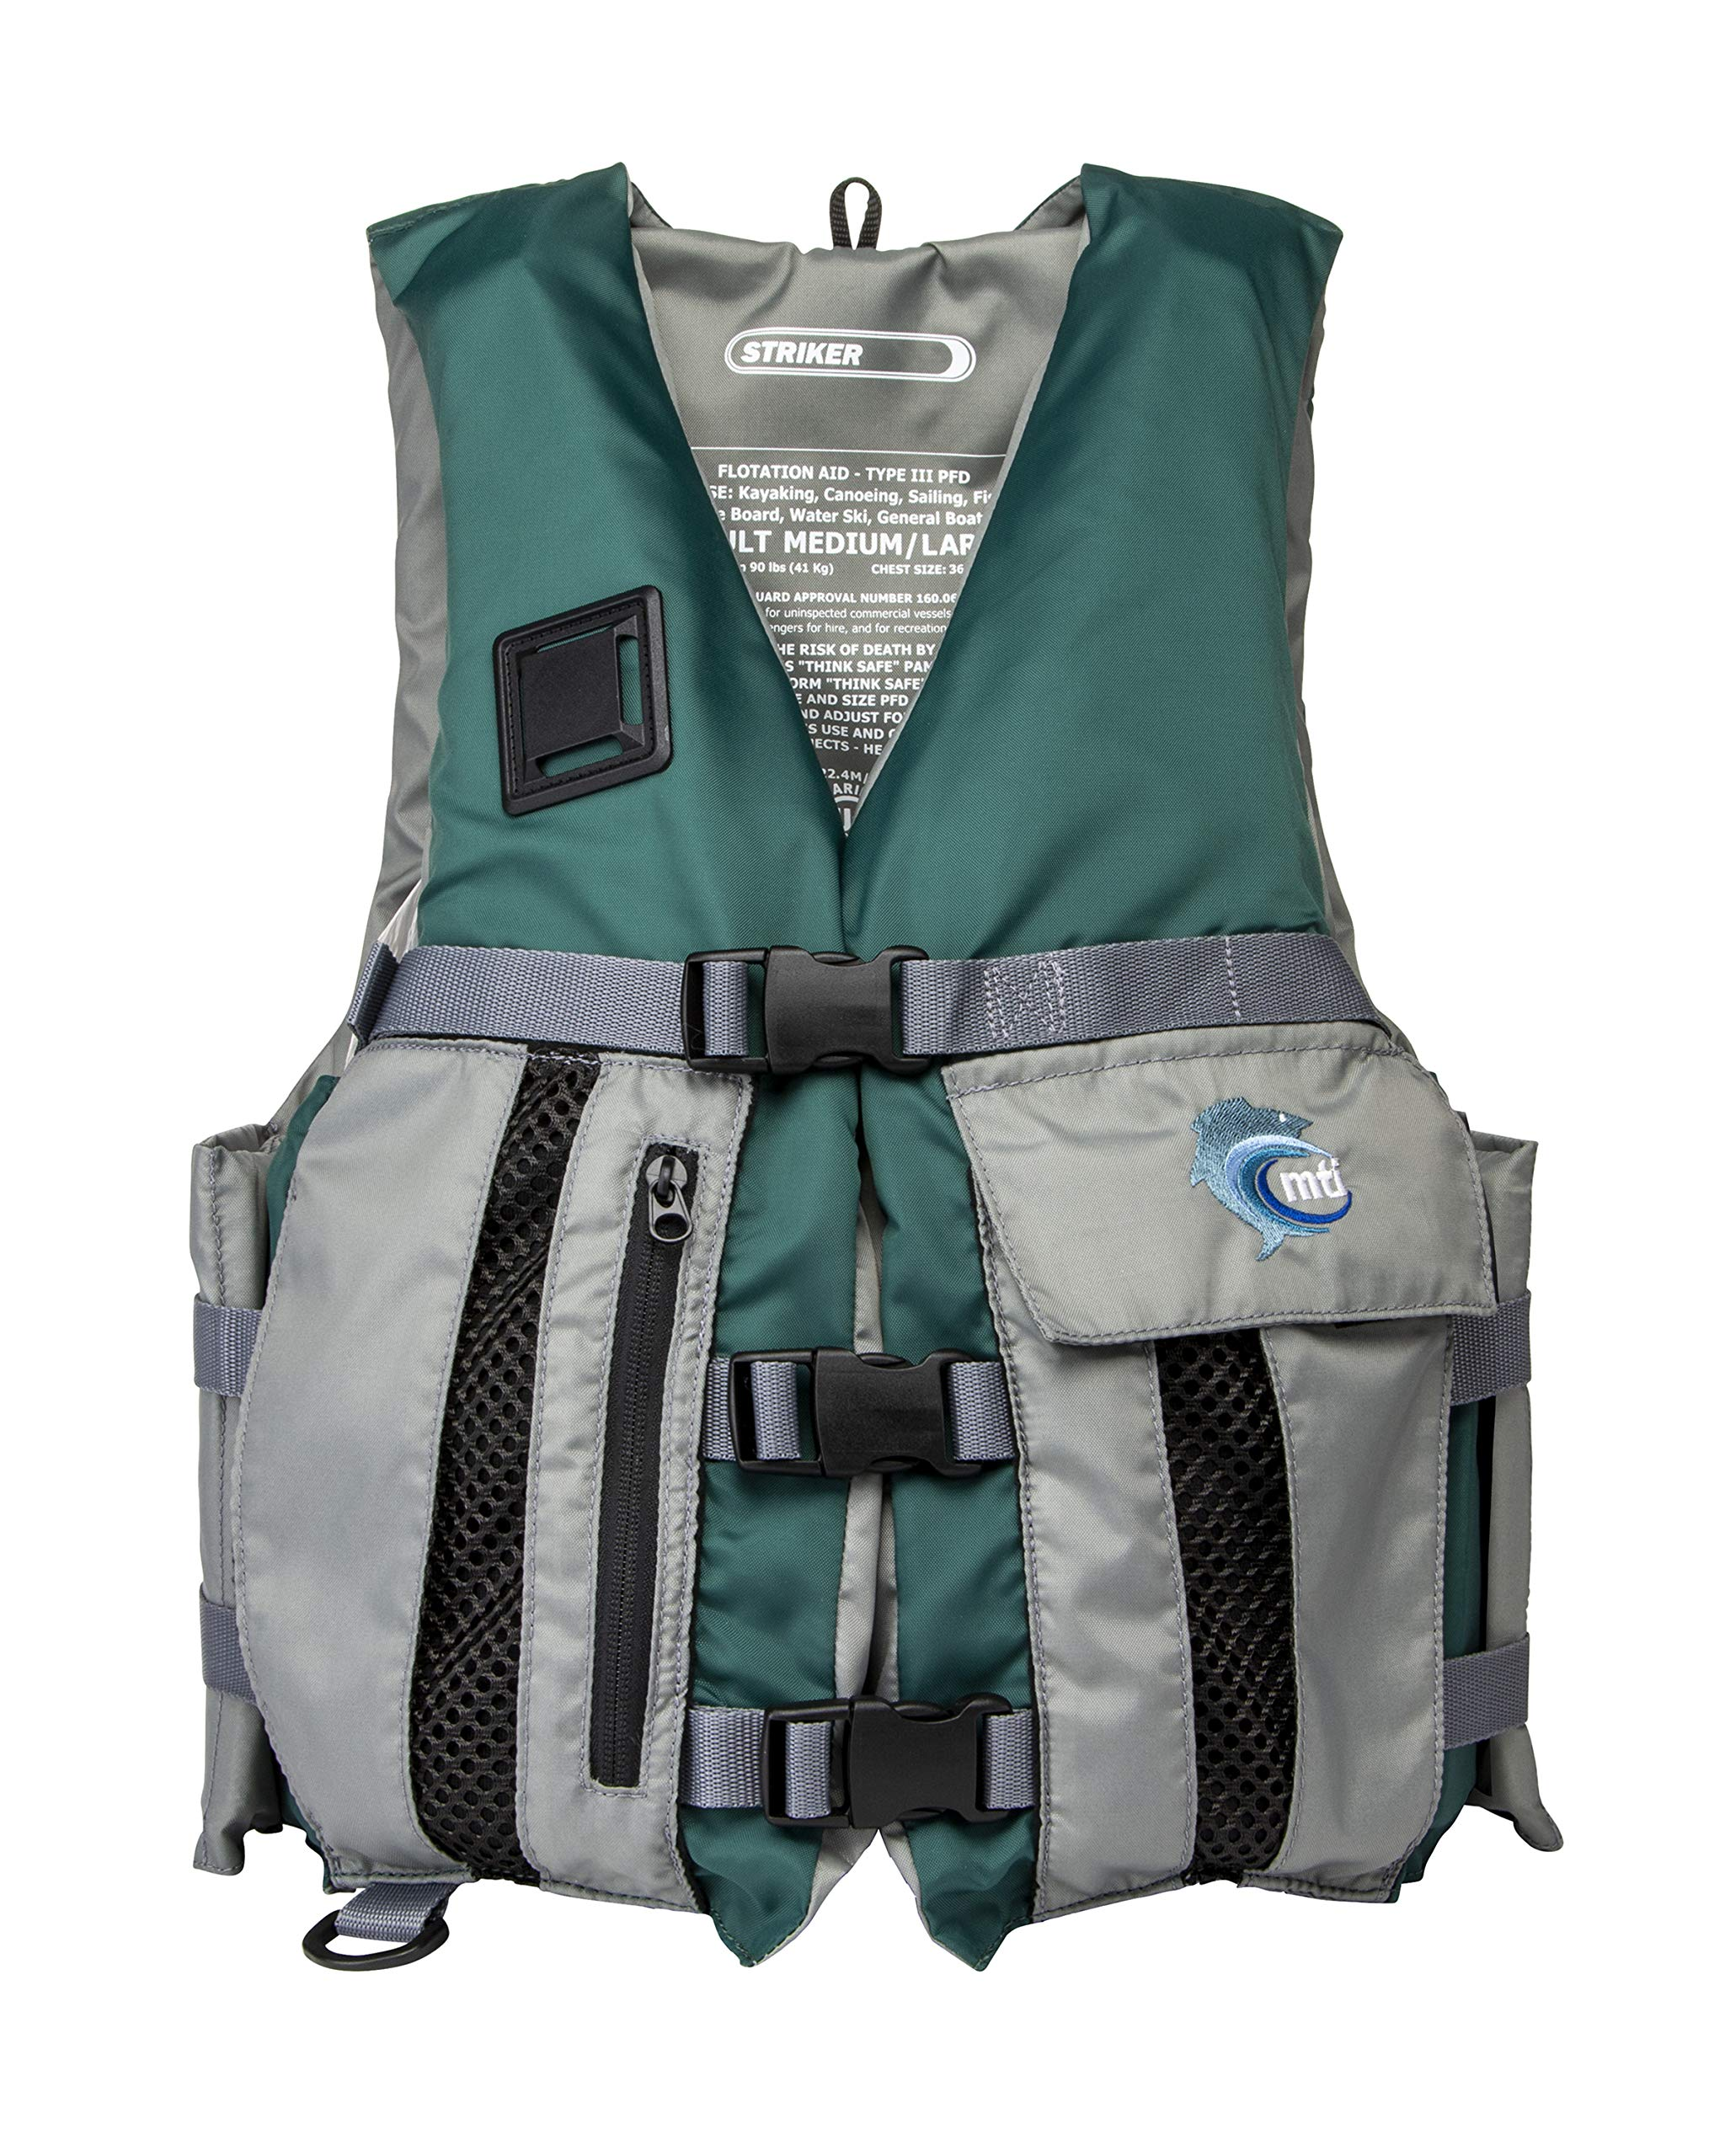 MTI Striker Fishing Life Jacket - Hunter Green/Silver Gray - MD/LG (36-44'')